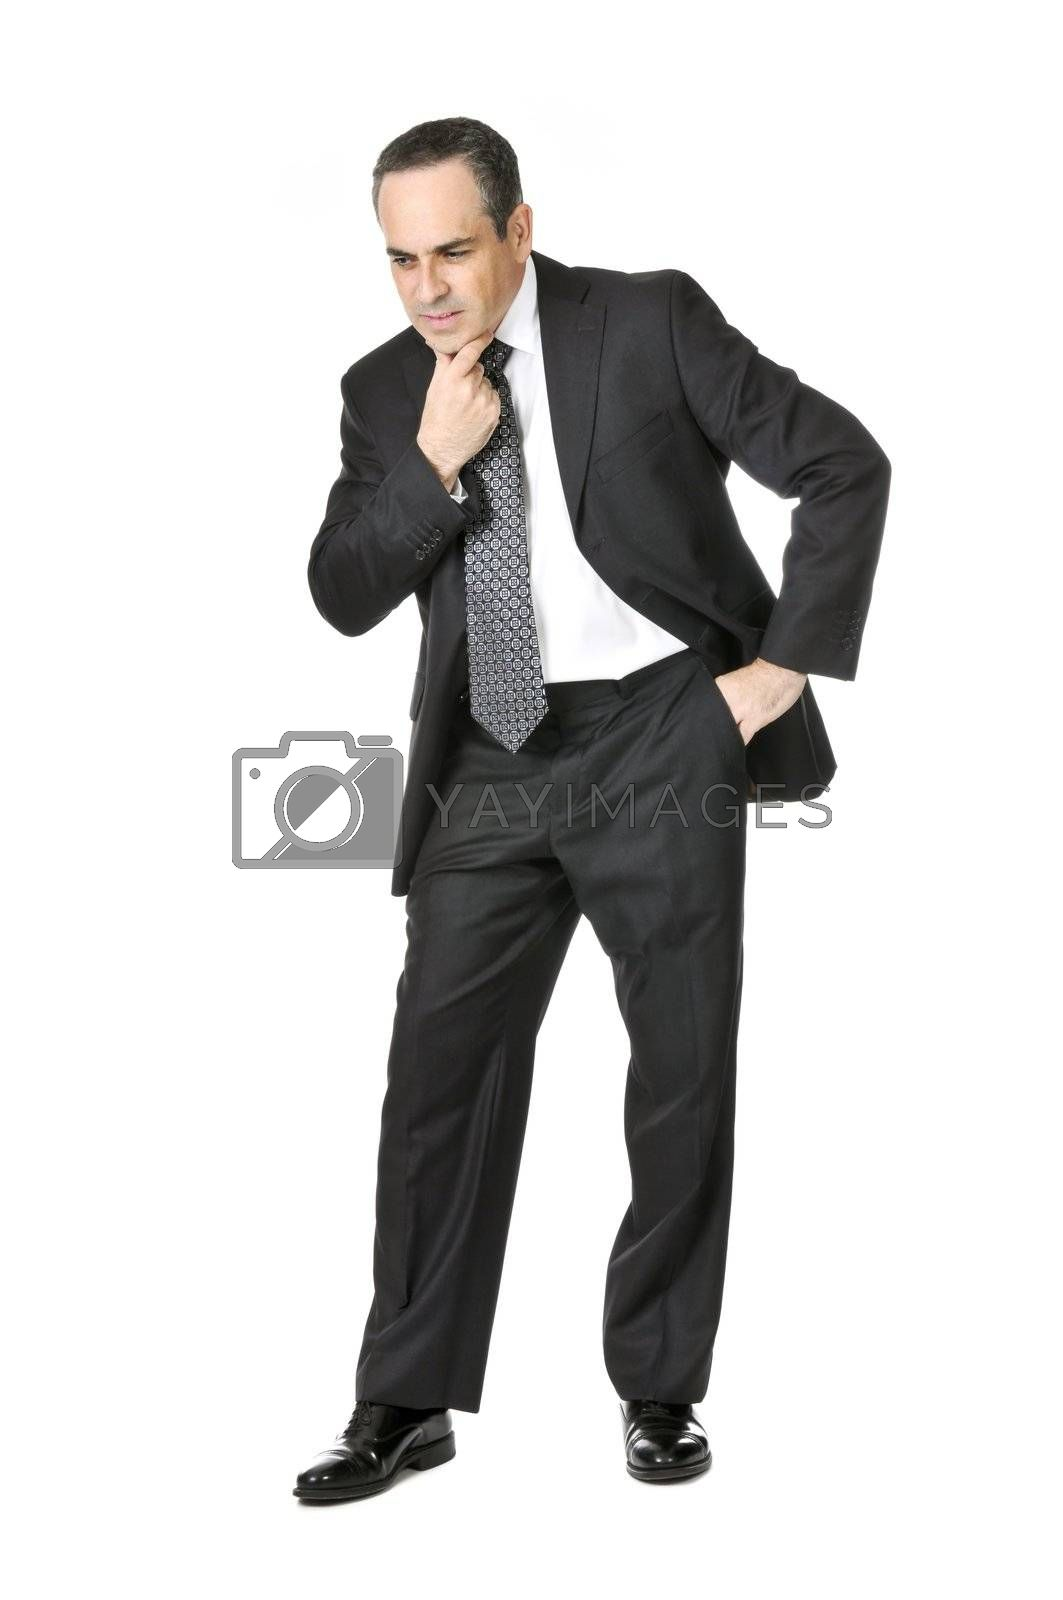 Businessman on white background by elenathewise